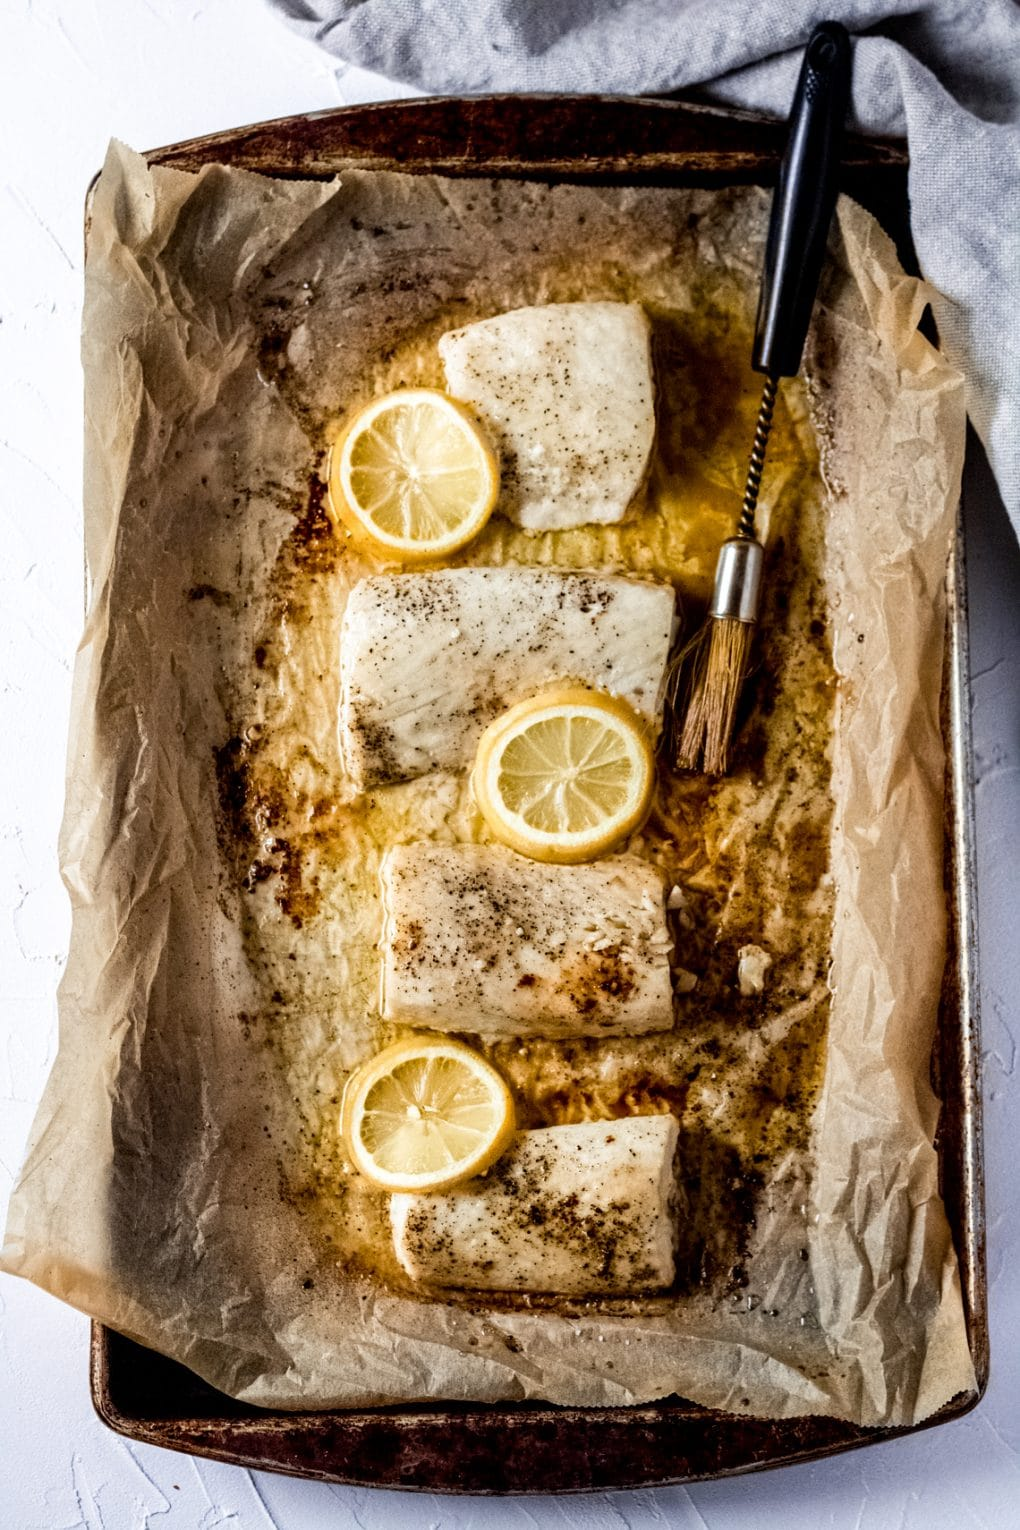 four mahi mahi fillets on brown parchment paper on a baking sheet. There are lemon slices on the fillets and a basting brush laying beside them.